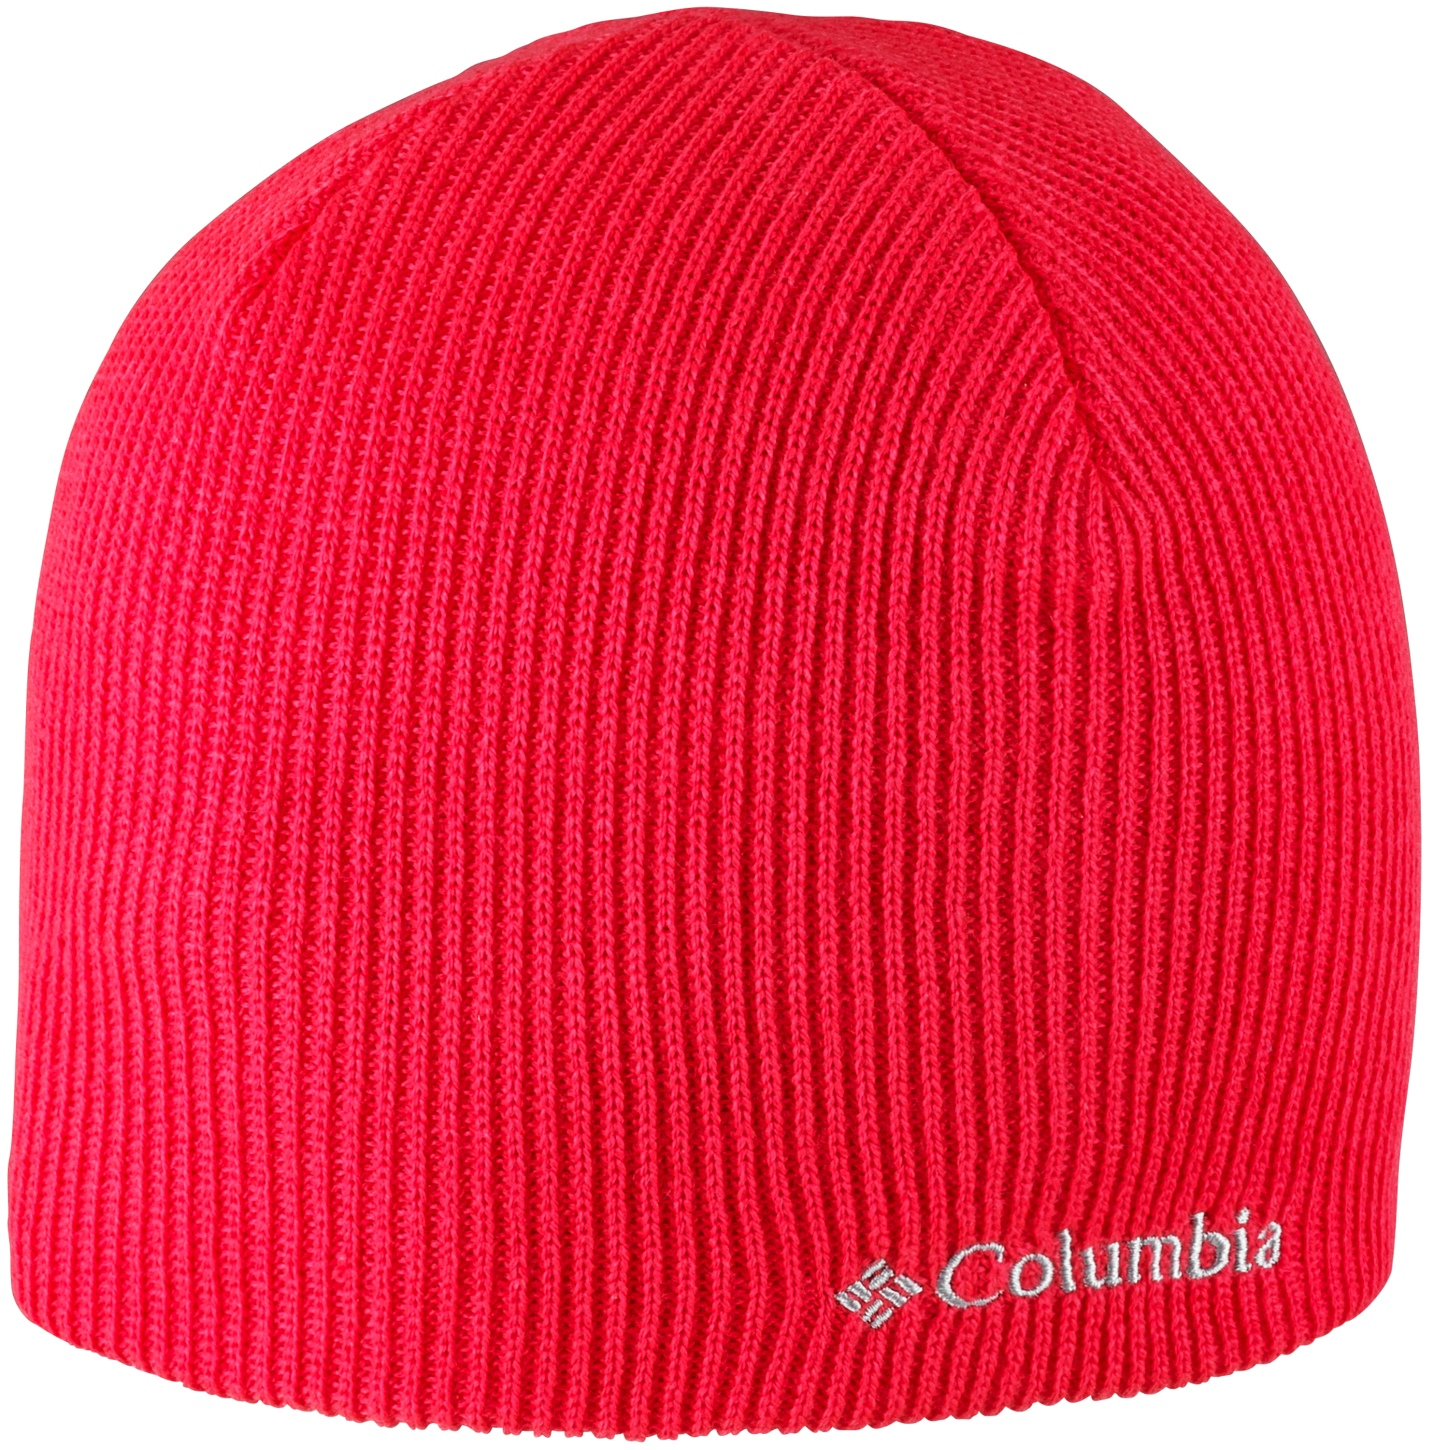 Columbia Whirlibird Watch Cap Beanie Red Camellia - au fbe61b30bbd3